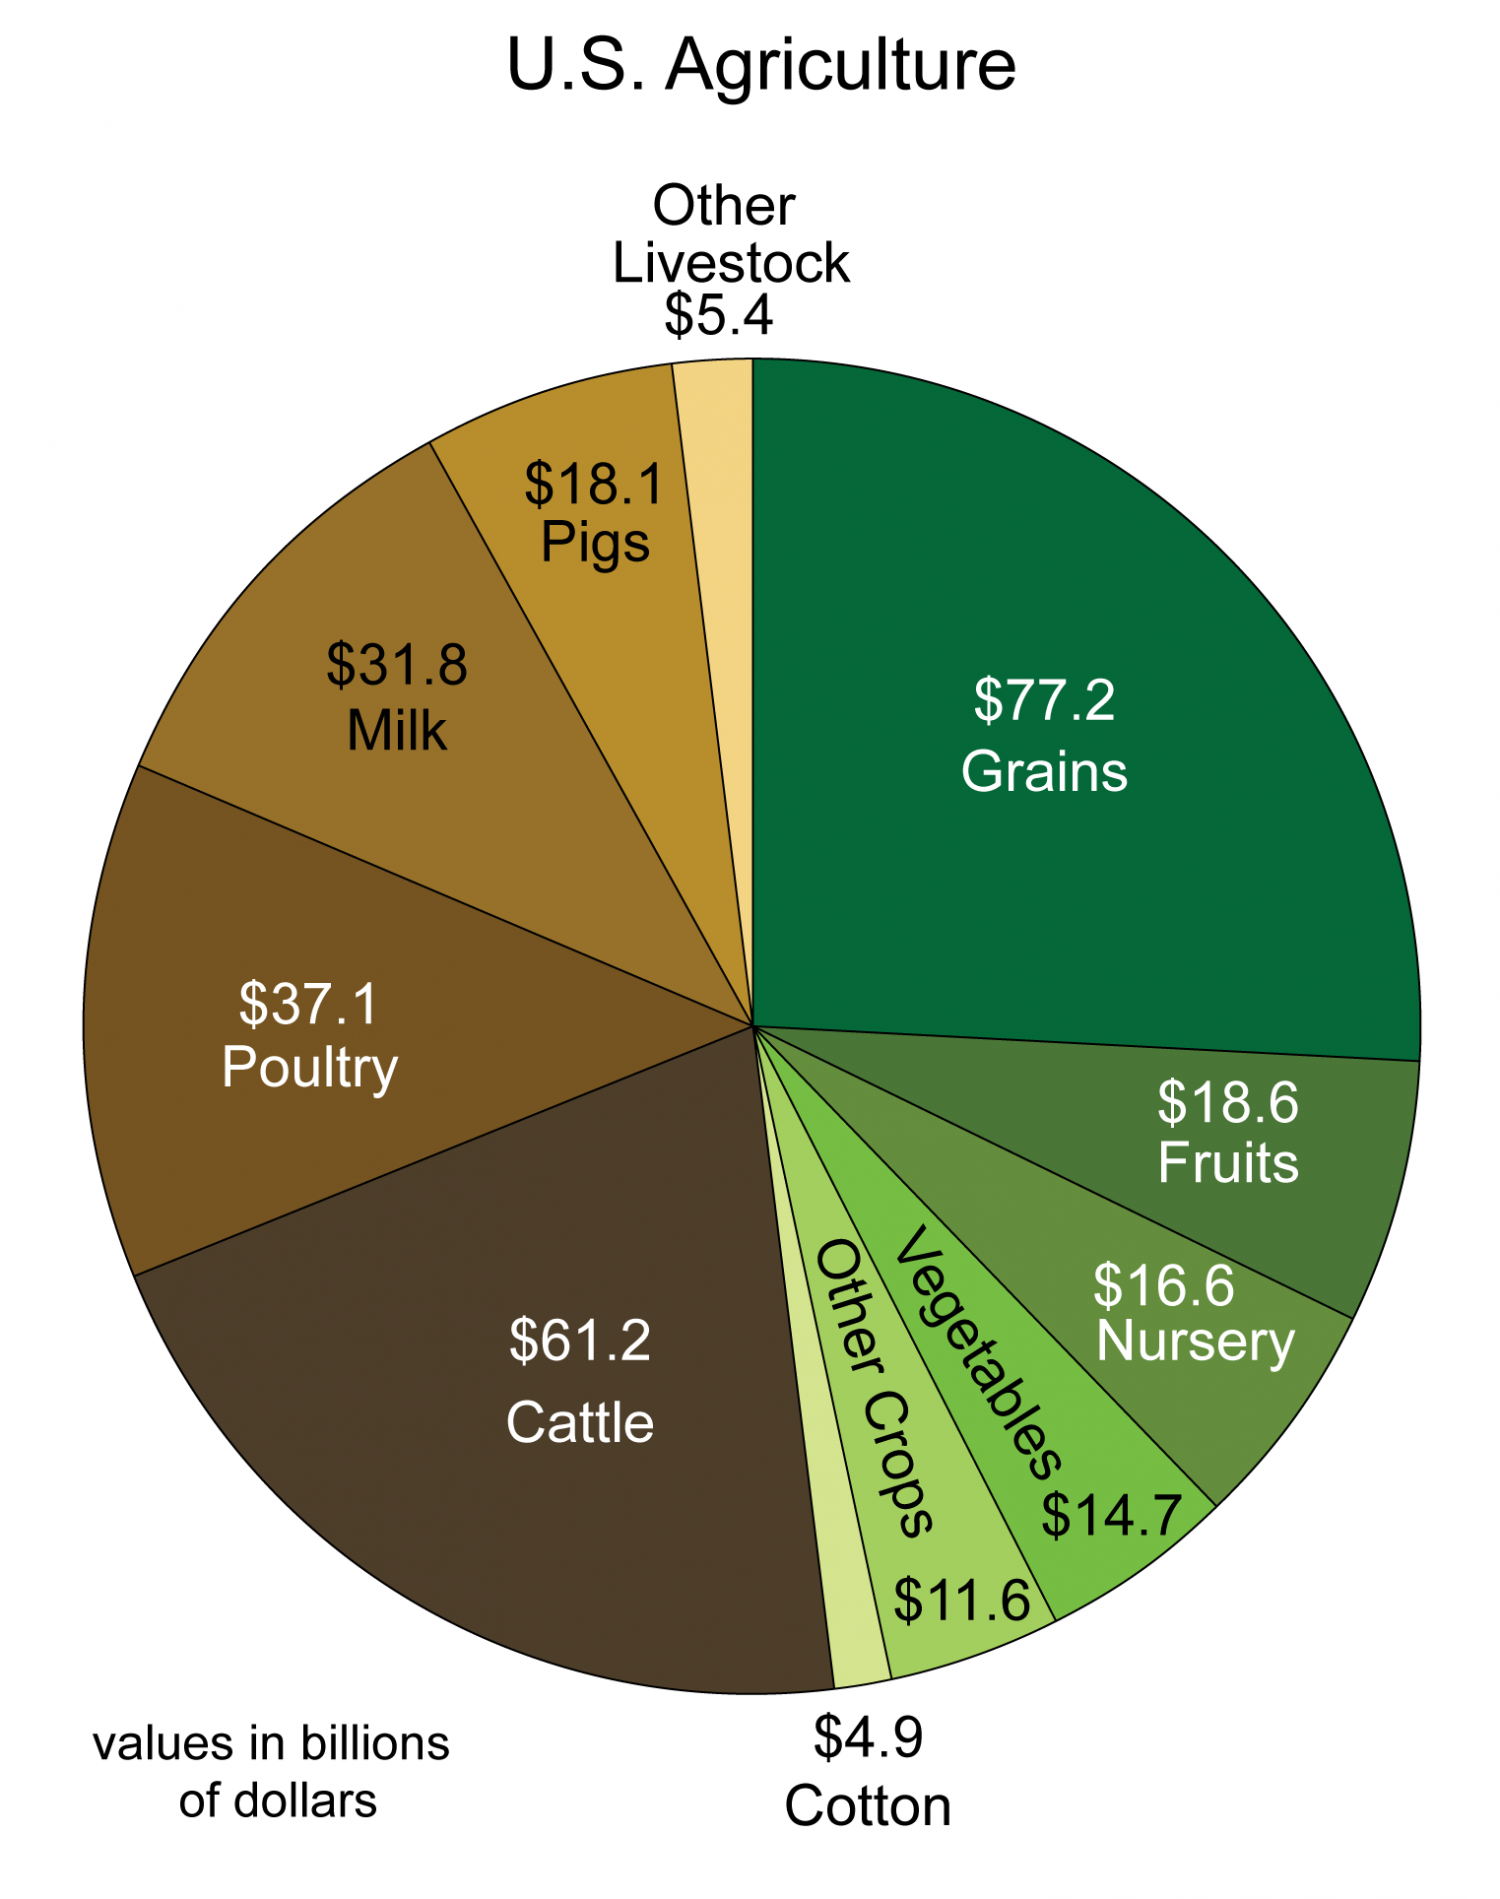 This chart shows a breakdown of the monetary value of US agriculture products by category